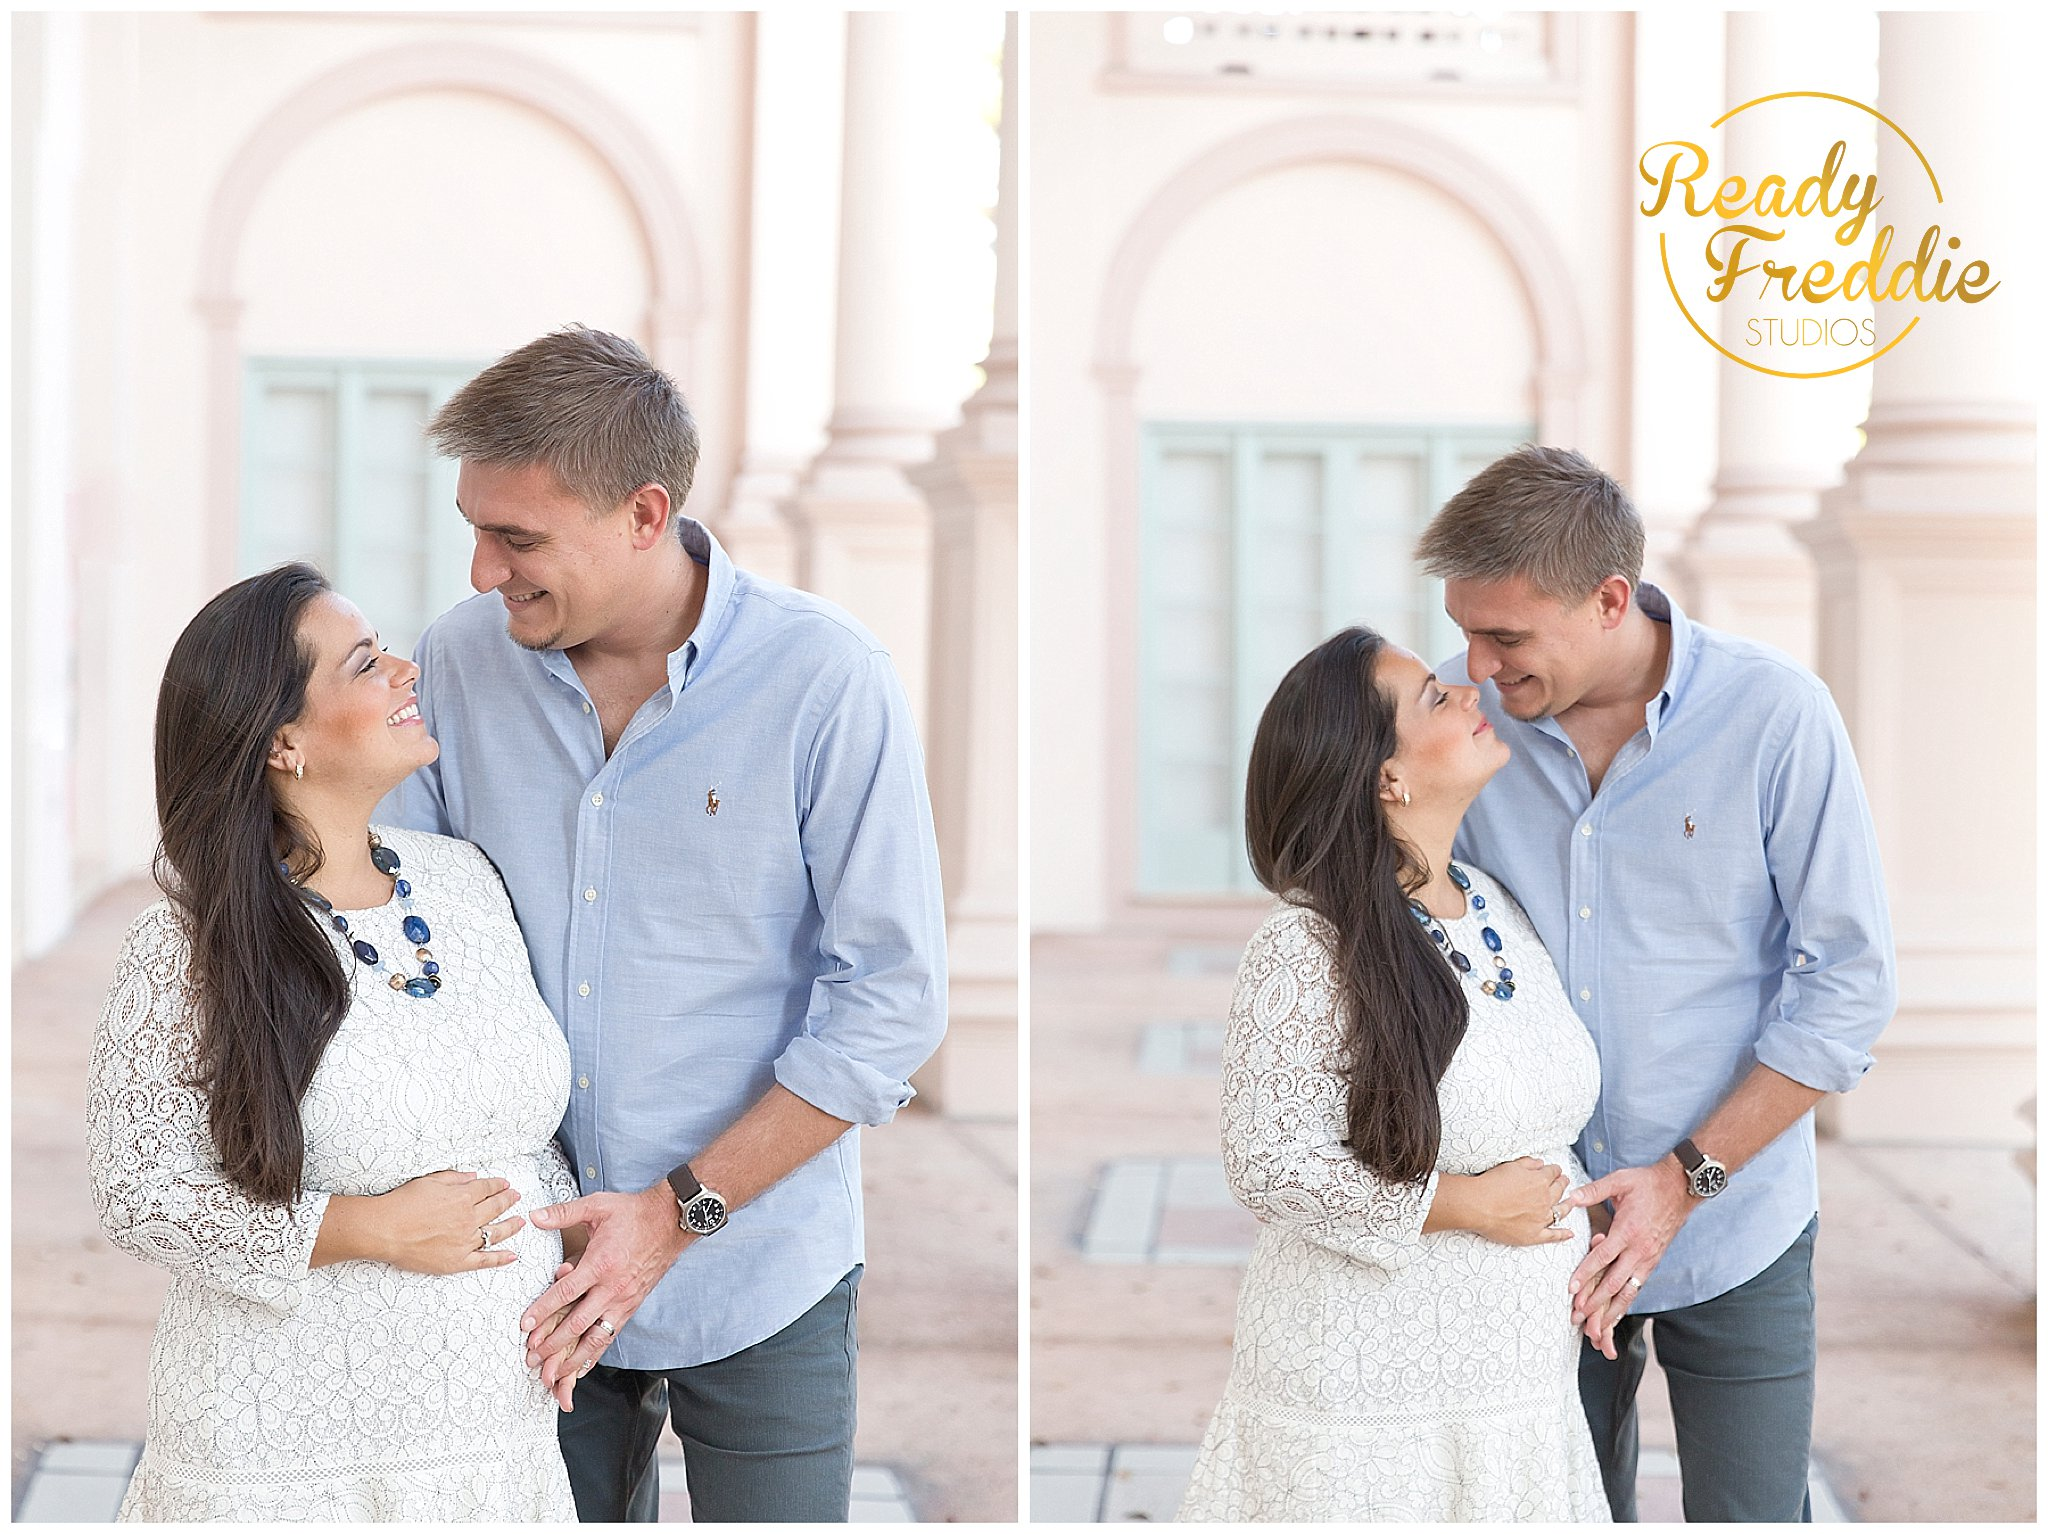 Maternity Session in Miami FL in the Colonnade Hotel in Coral Gables